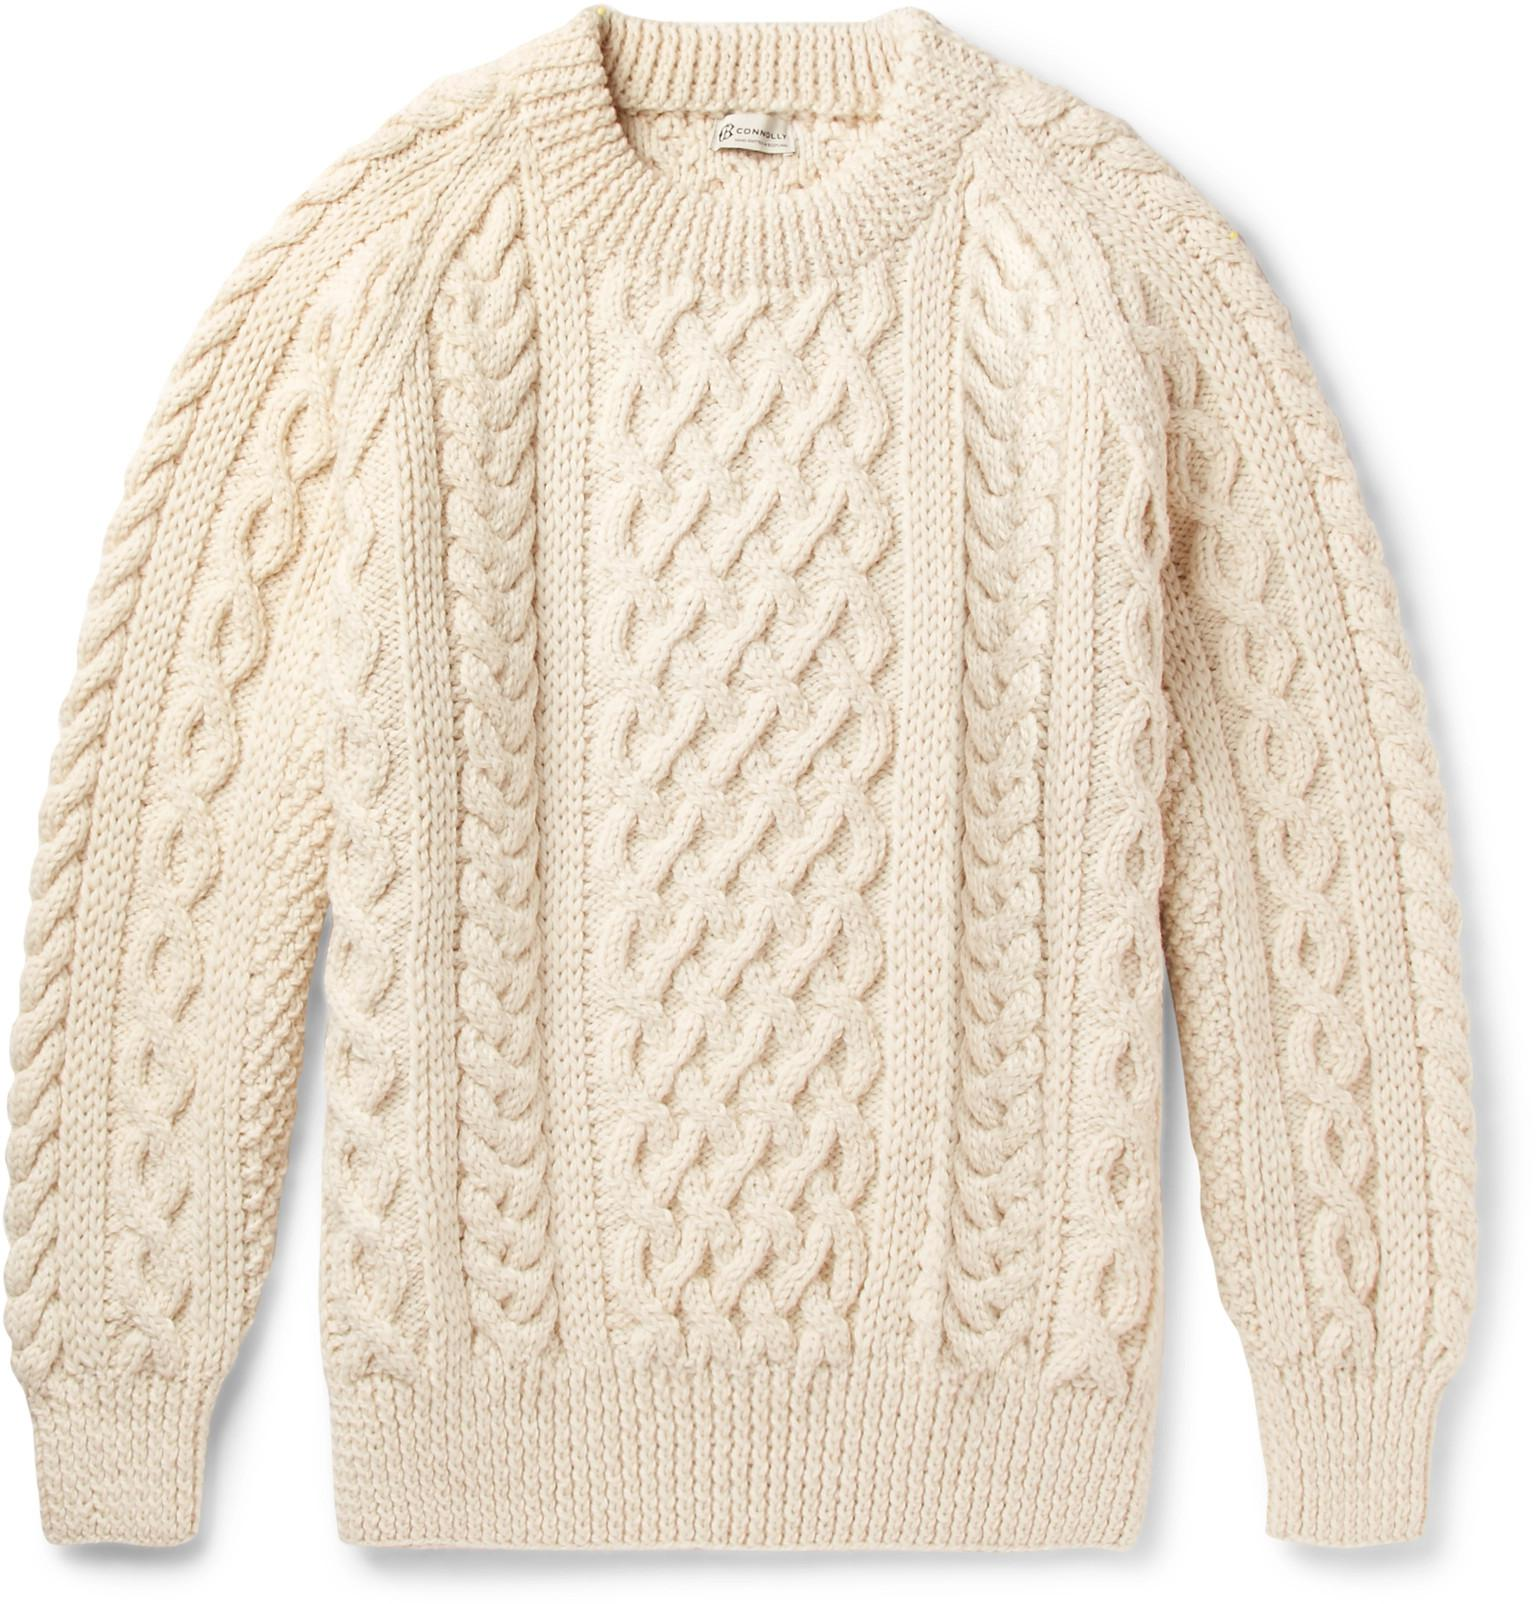 bfd74c475484b7 Lyst - CONNOLLY Aran Wool Sweater in Natural for Men